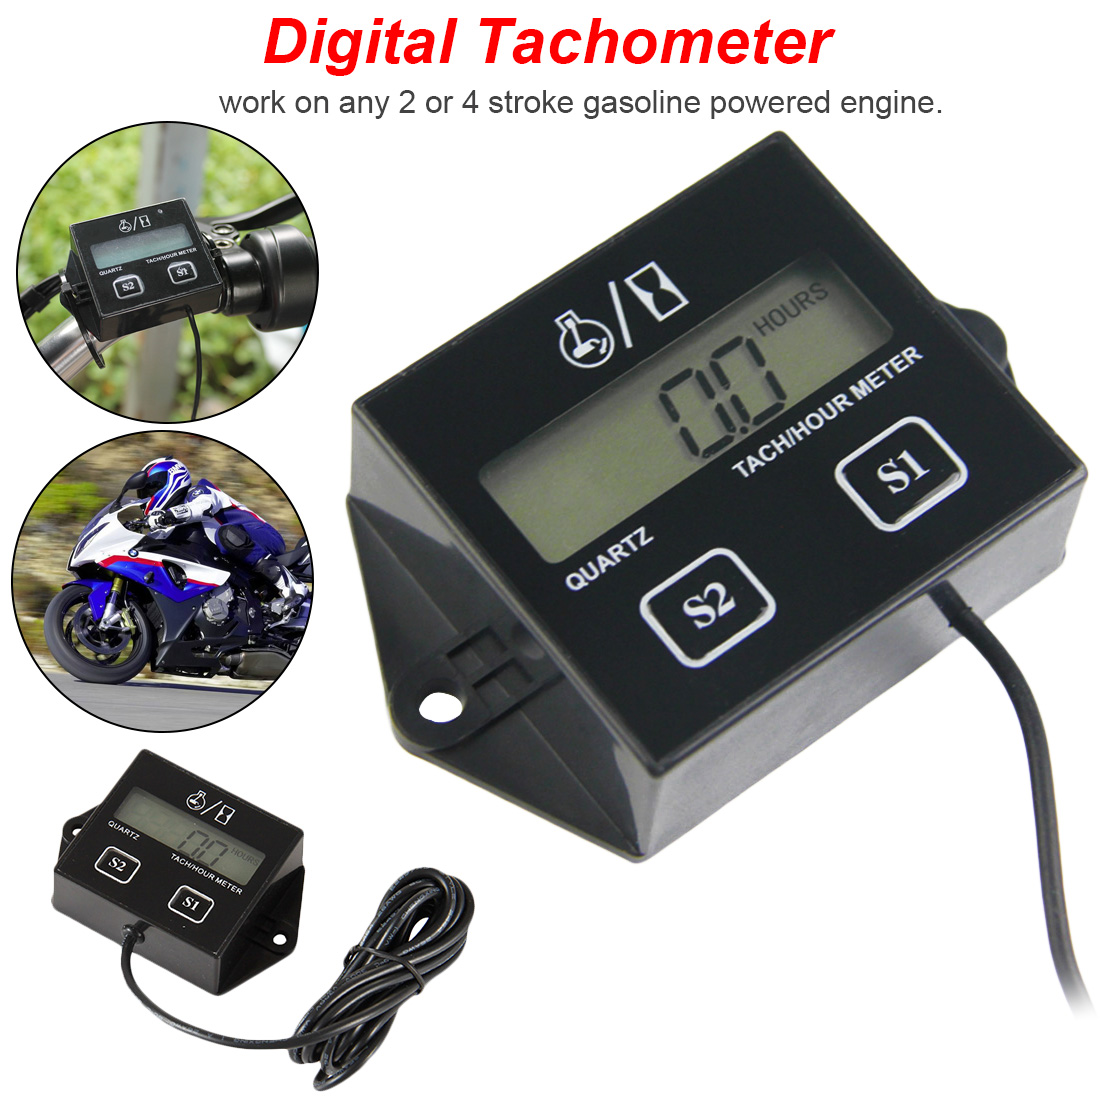 LCD Digital Engine Tach Hour Meter Tachometer Gauge Inductive Display For Motorcycle Motor Marine Engine chainsaw pit bike Boat